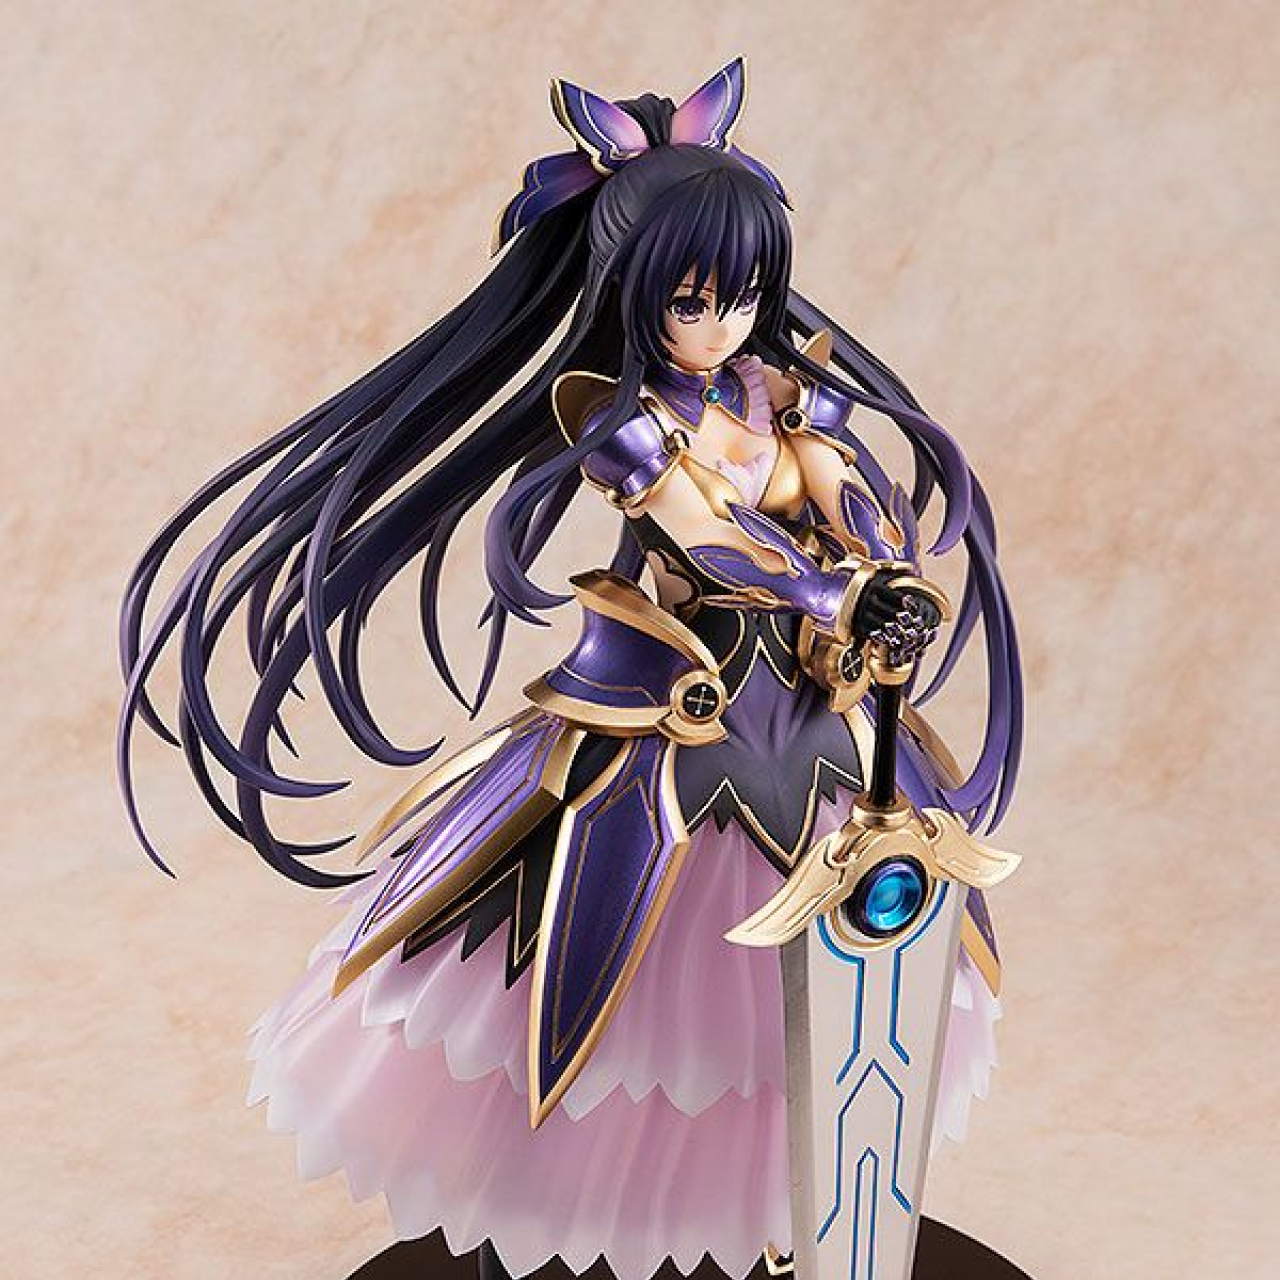 Date A Live: Tohka Yatogami (23cm, 1/7 scale, Astral Dress ver.)